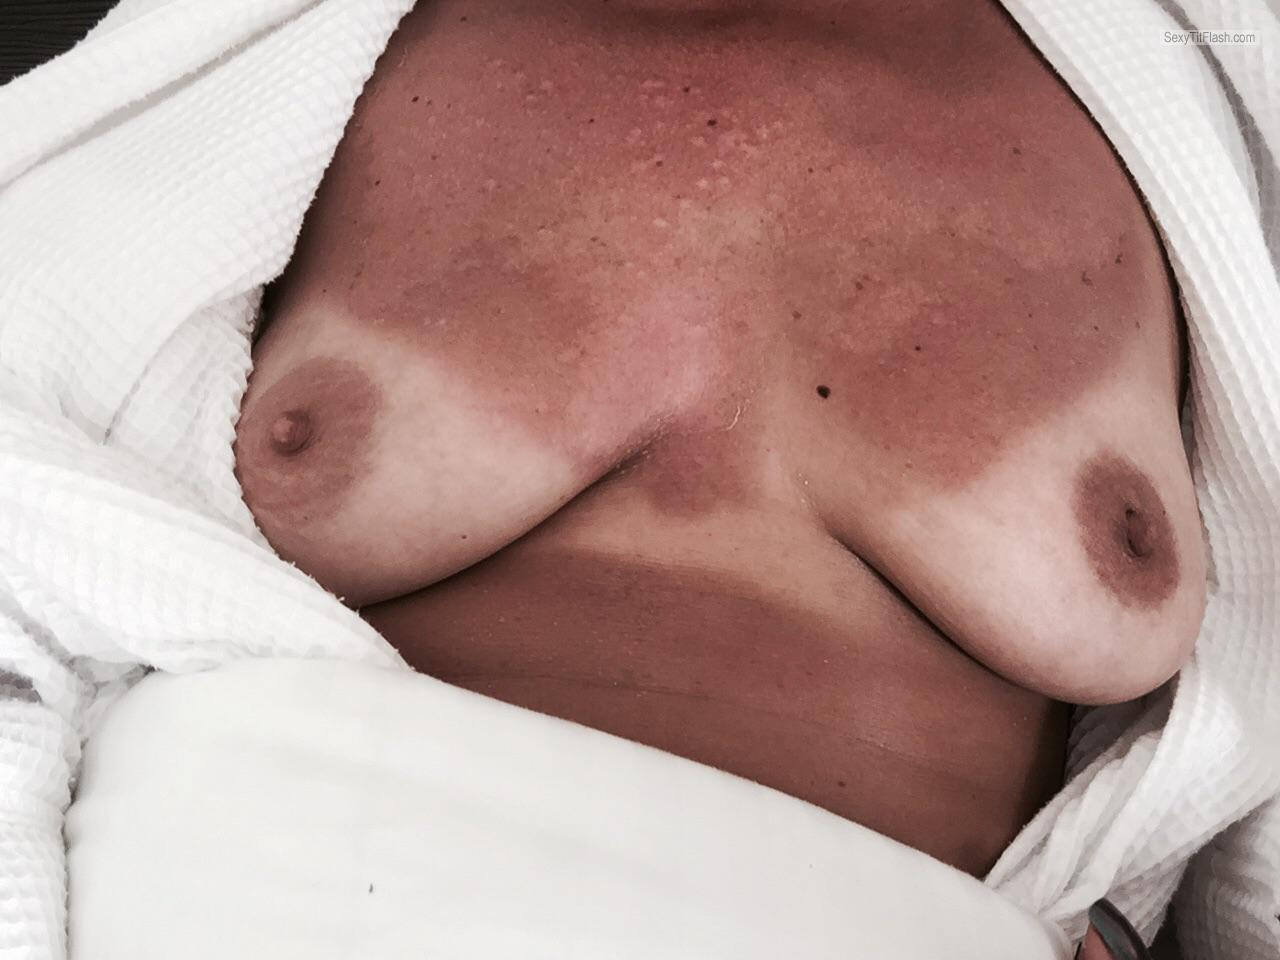 Tit Flash: My Medium Tits With Strong Tanlines - E V from United States